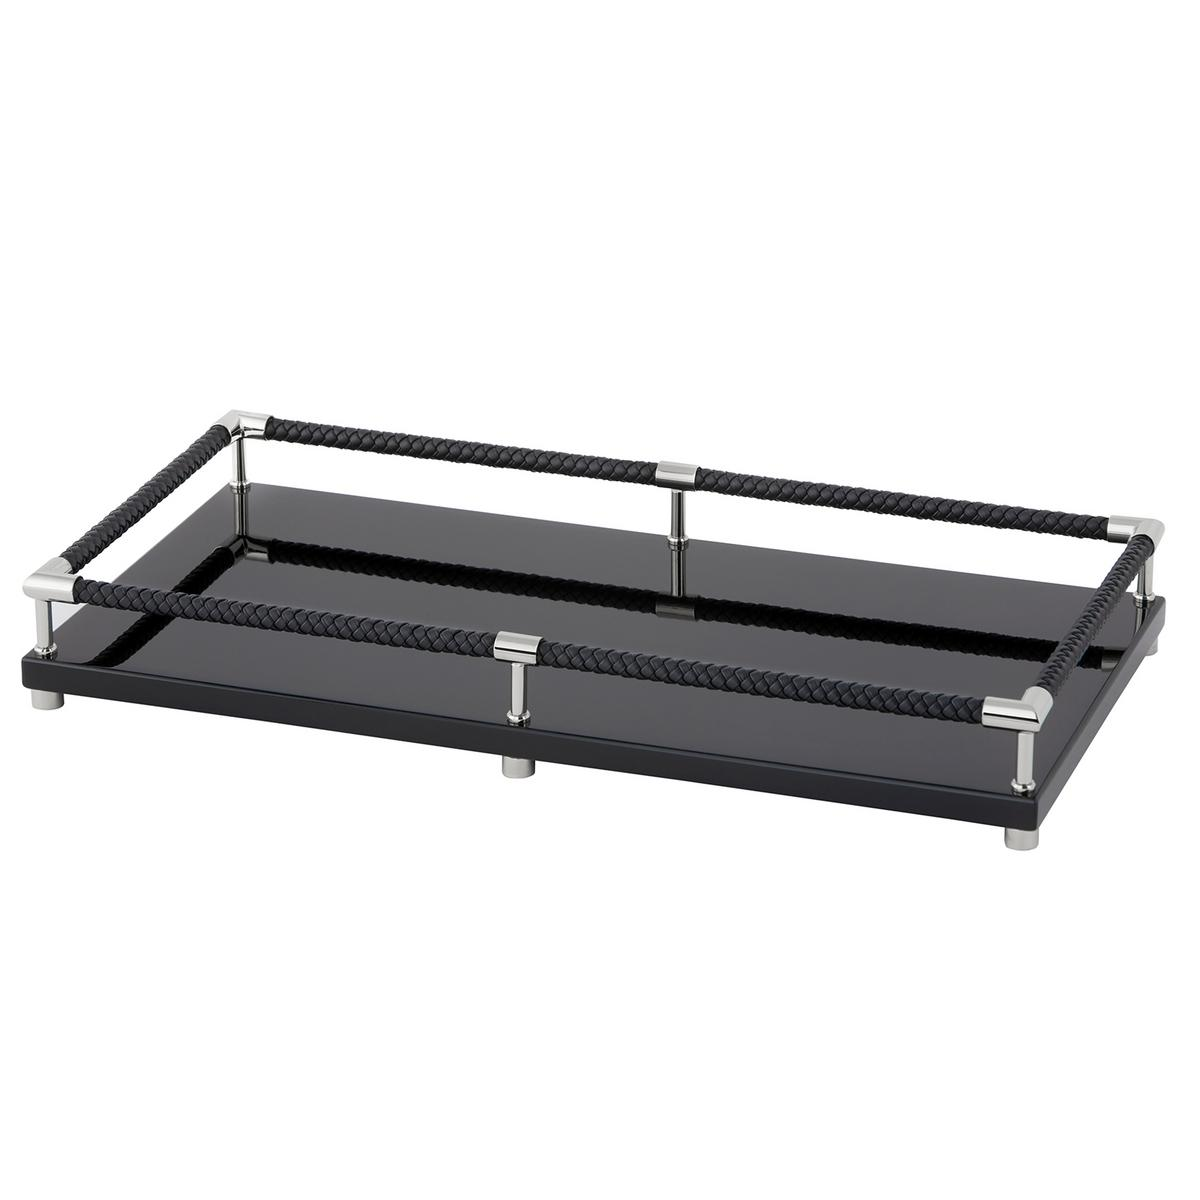 Riviere vanity decorative tray with leather handles black - Bathroom accessories vanity tray ...